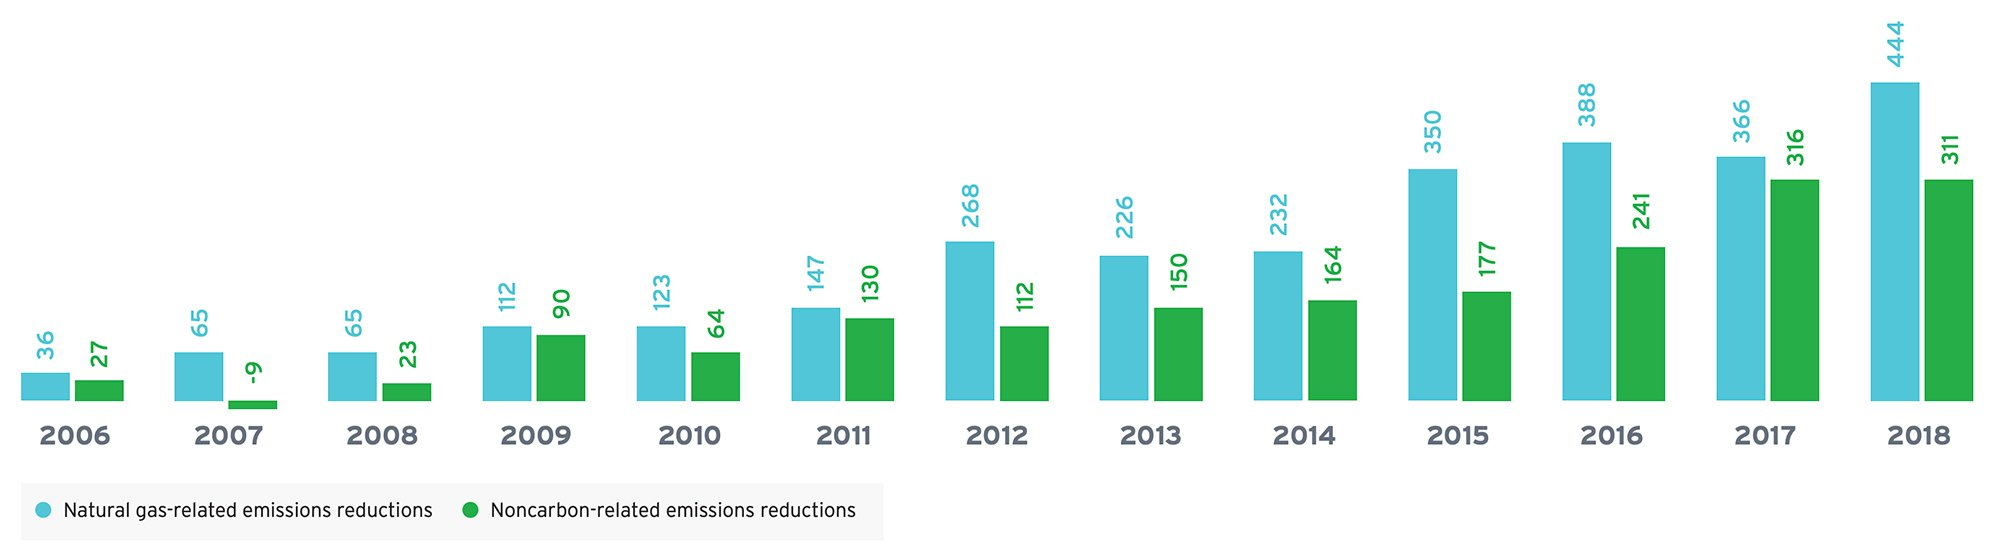 U.S. Emissions Reductions as a Result of Increased Use of Natural Gas and Renewables